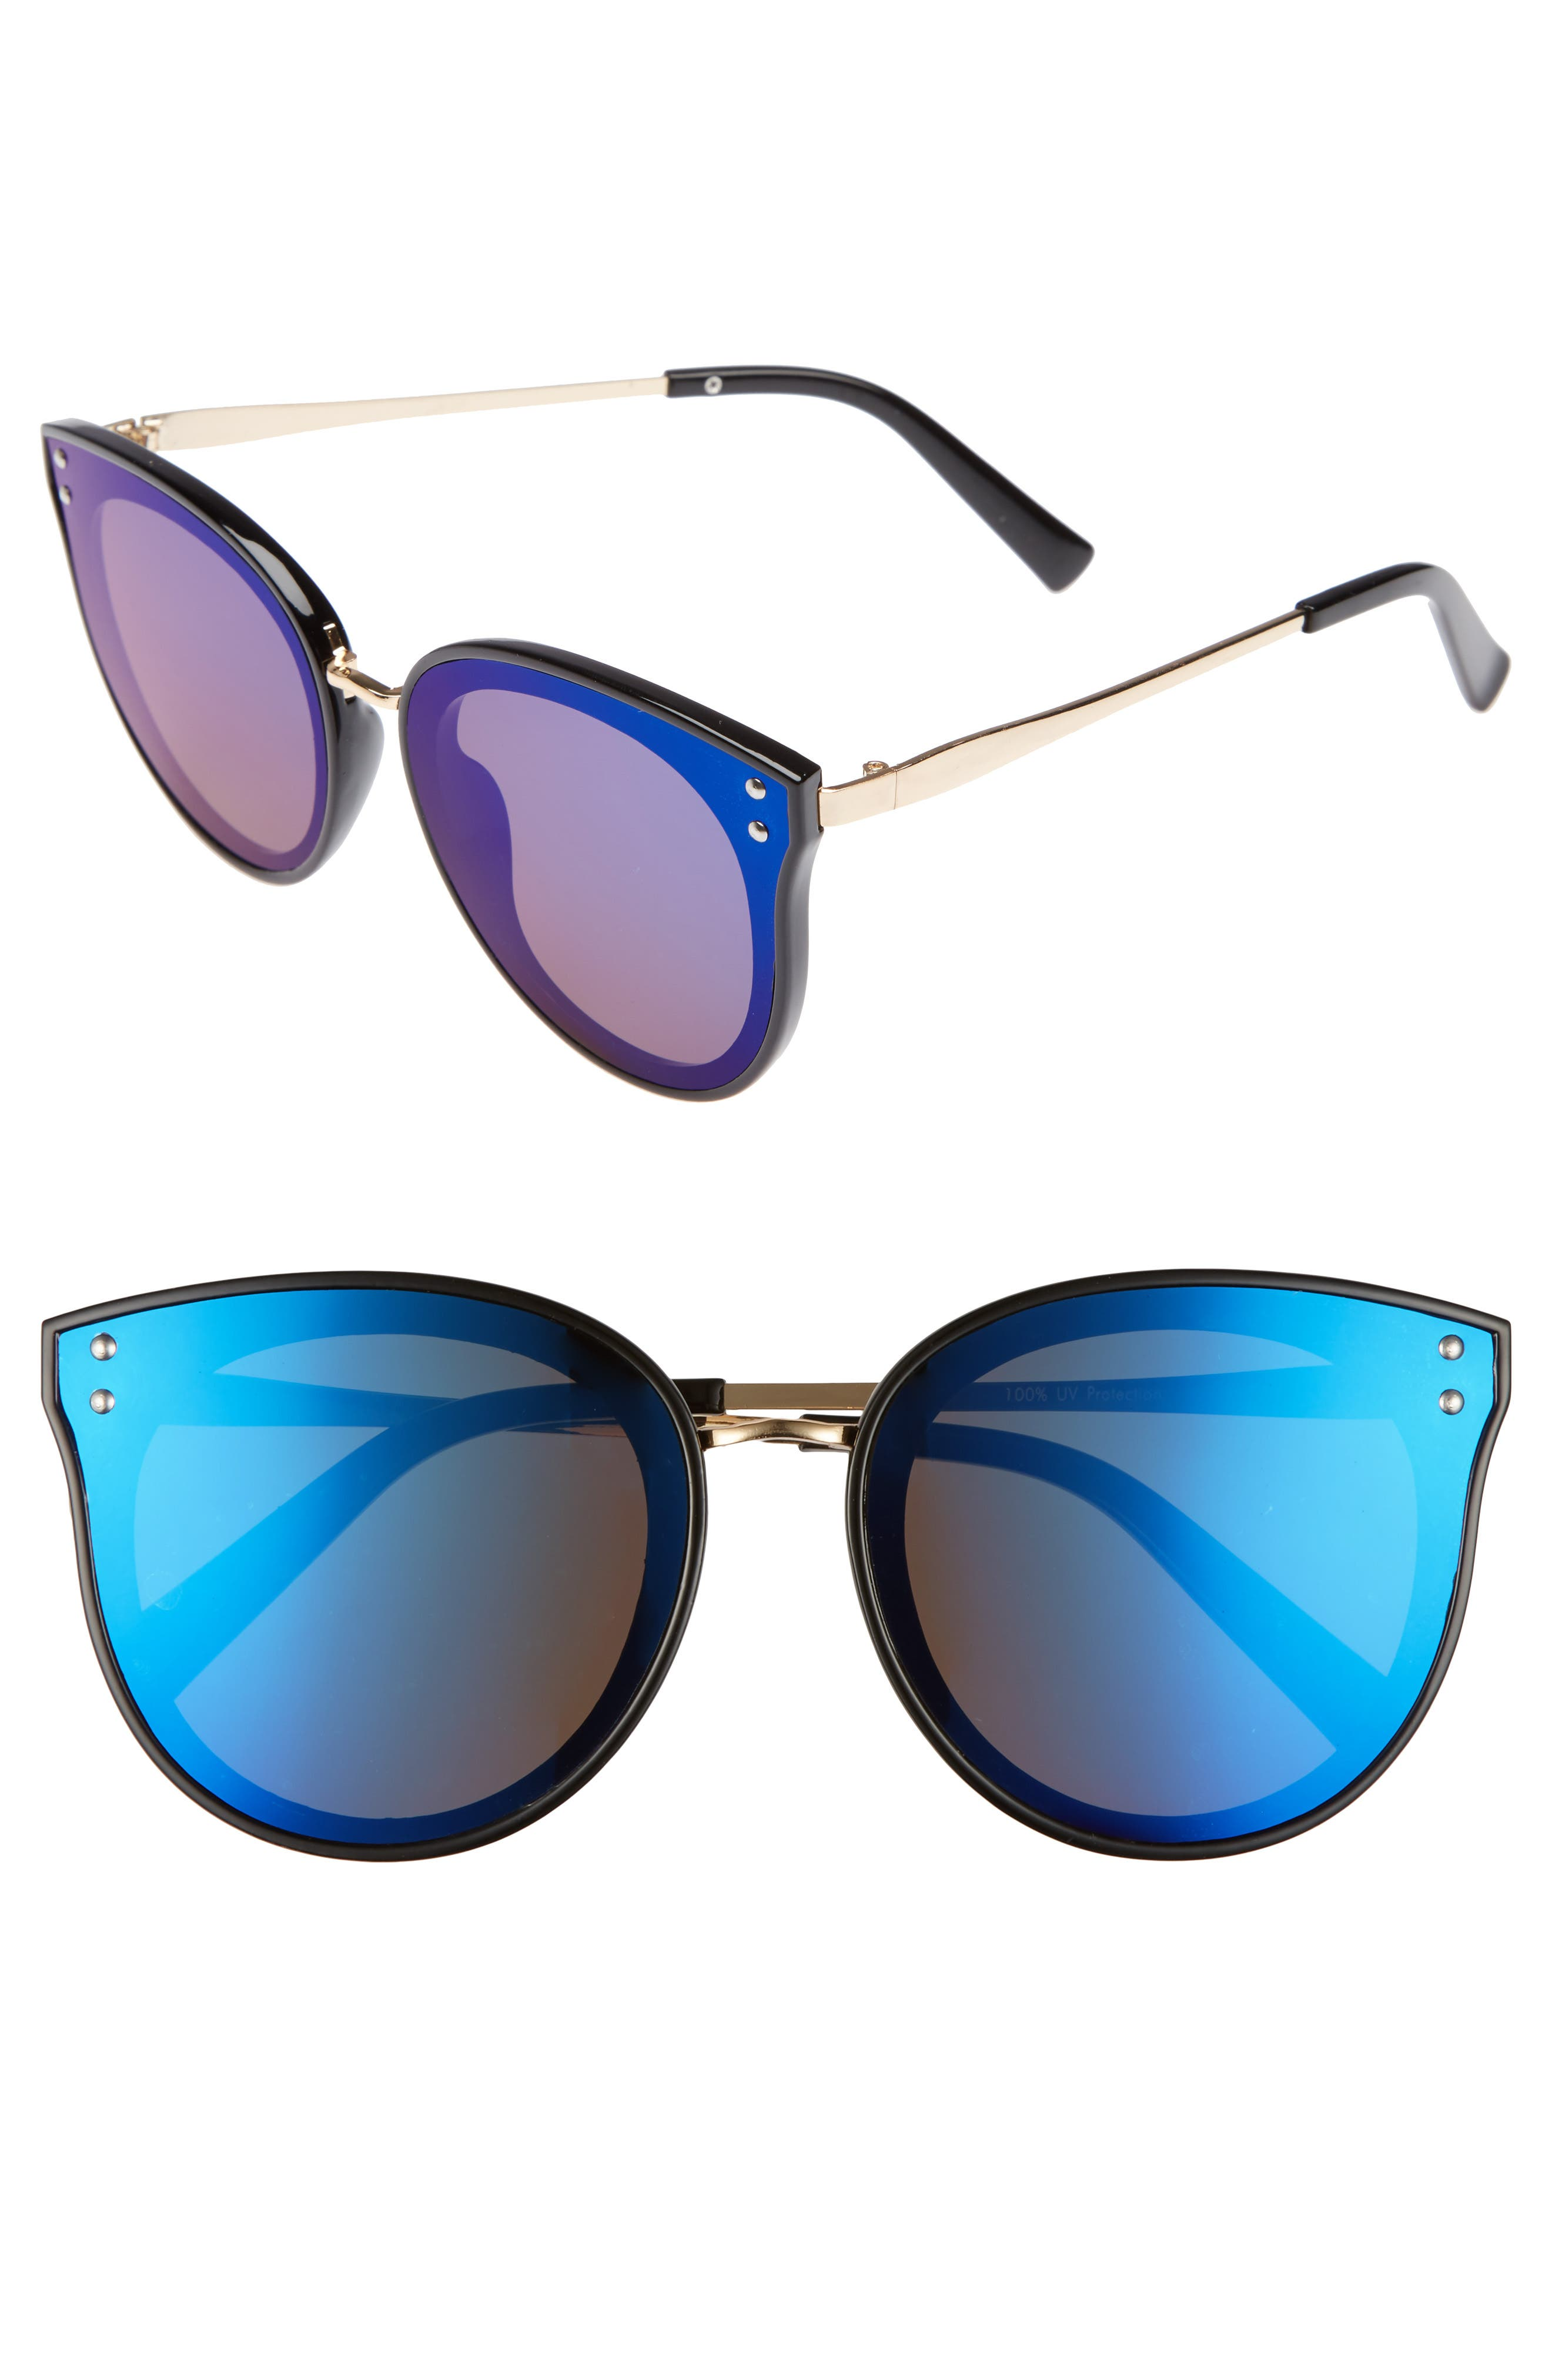 51mm Round Sunglasses,                             Main thumbnail 1, color,                             001